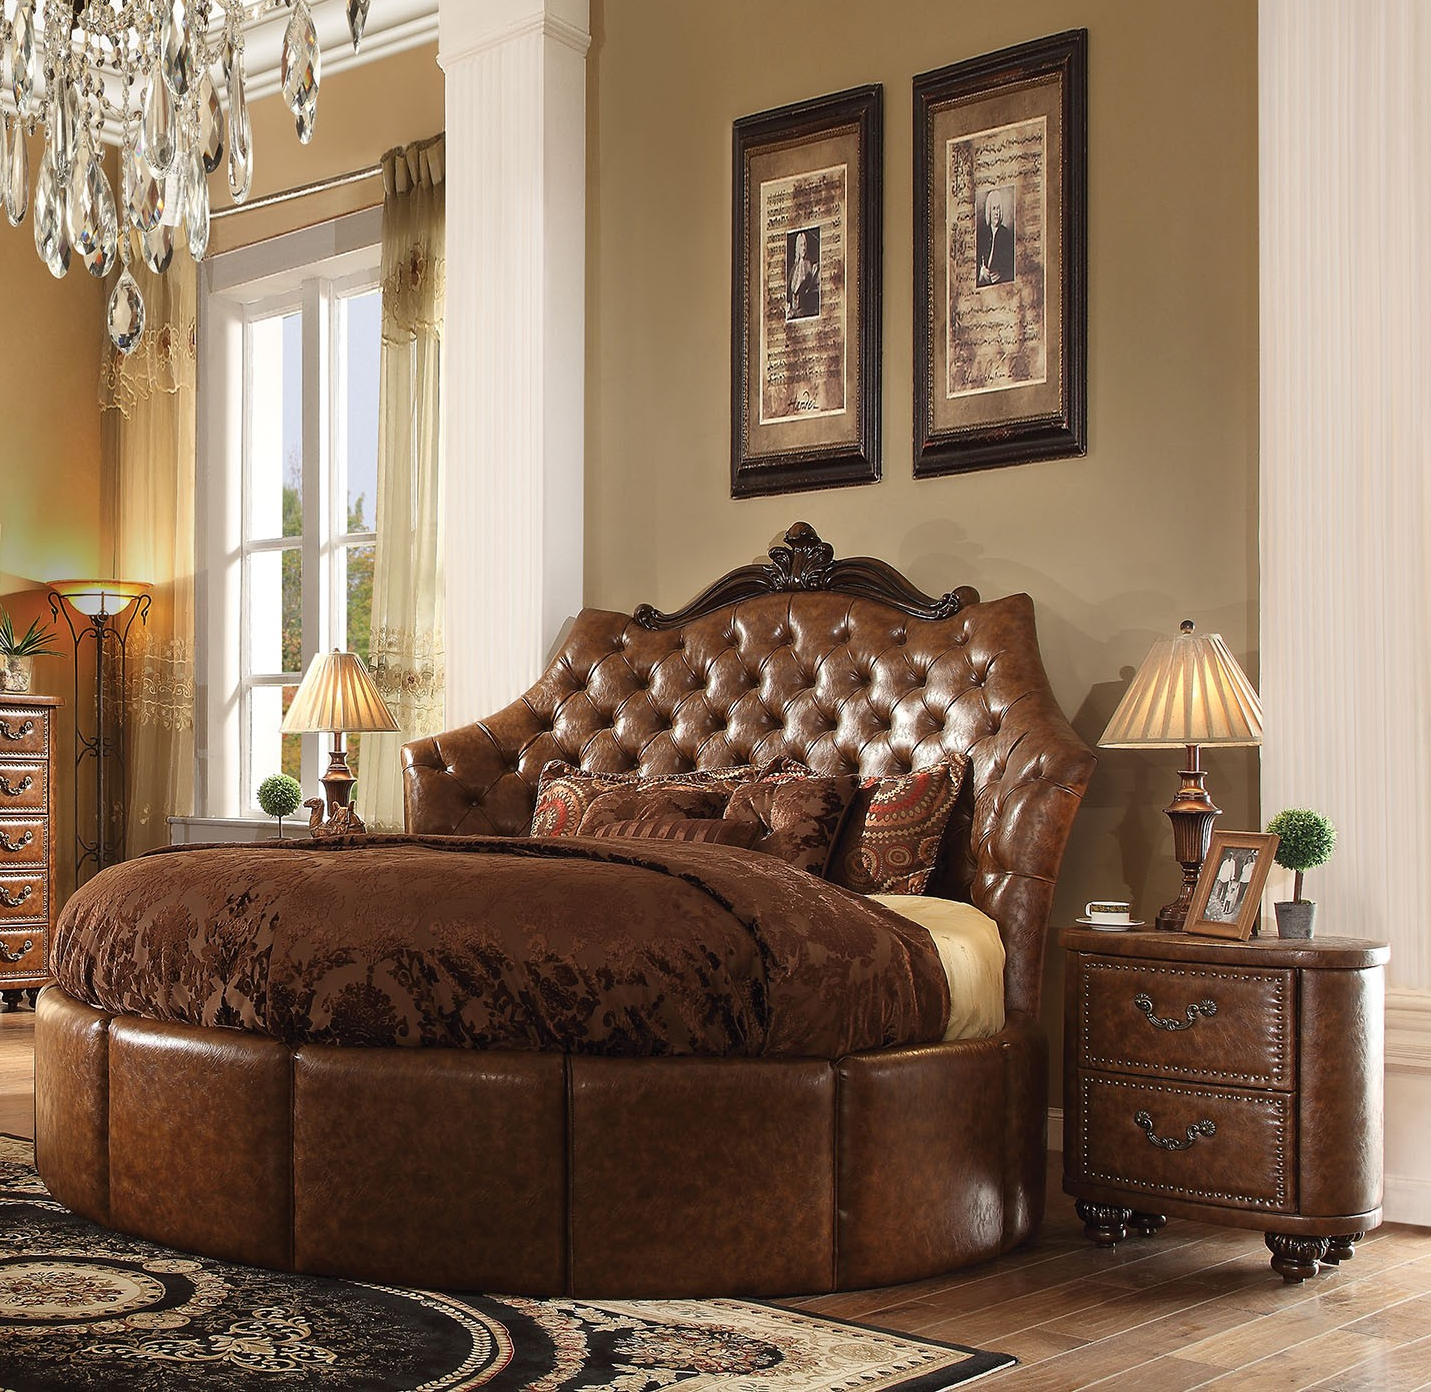 Formal round cherry brown bedroom set acme hot sectionals for Bedroom designs round beds